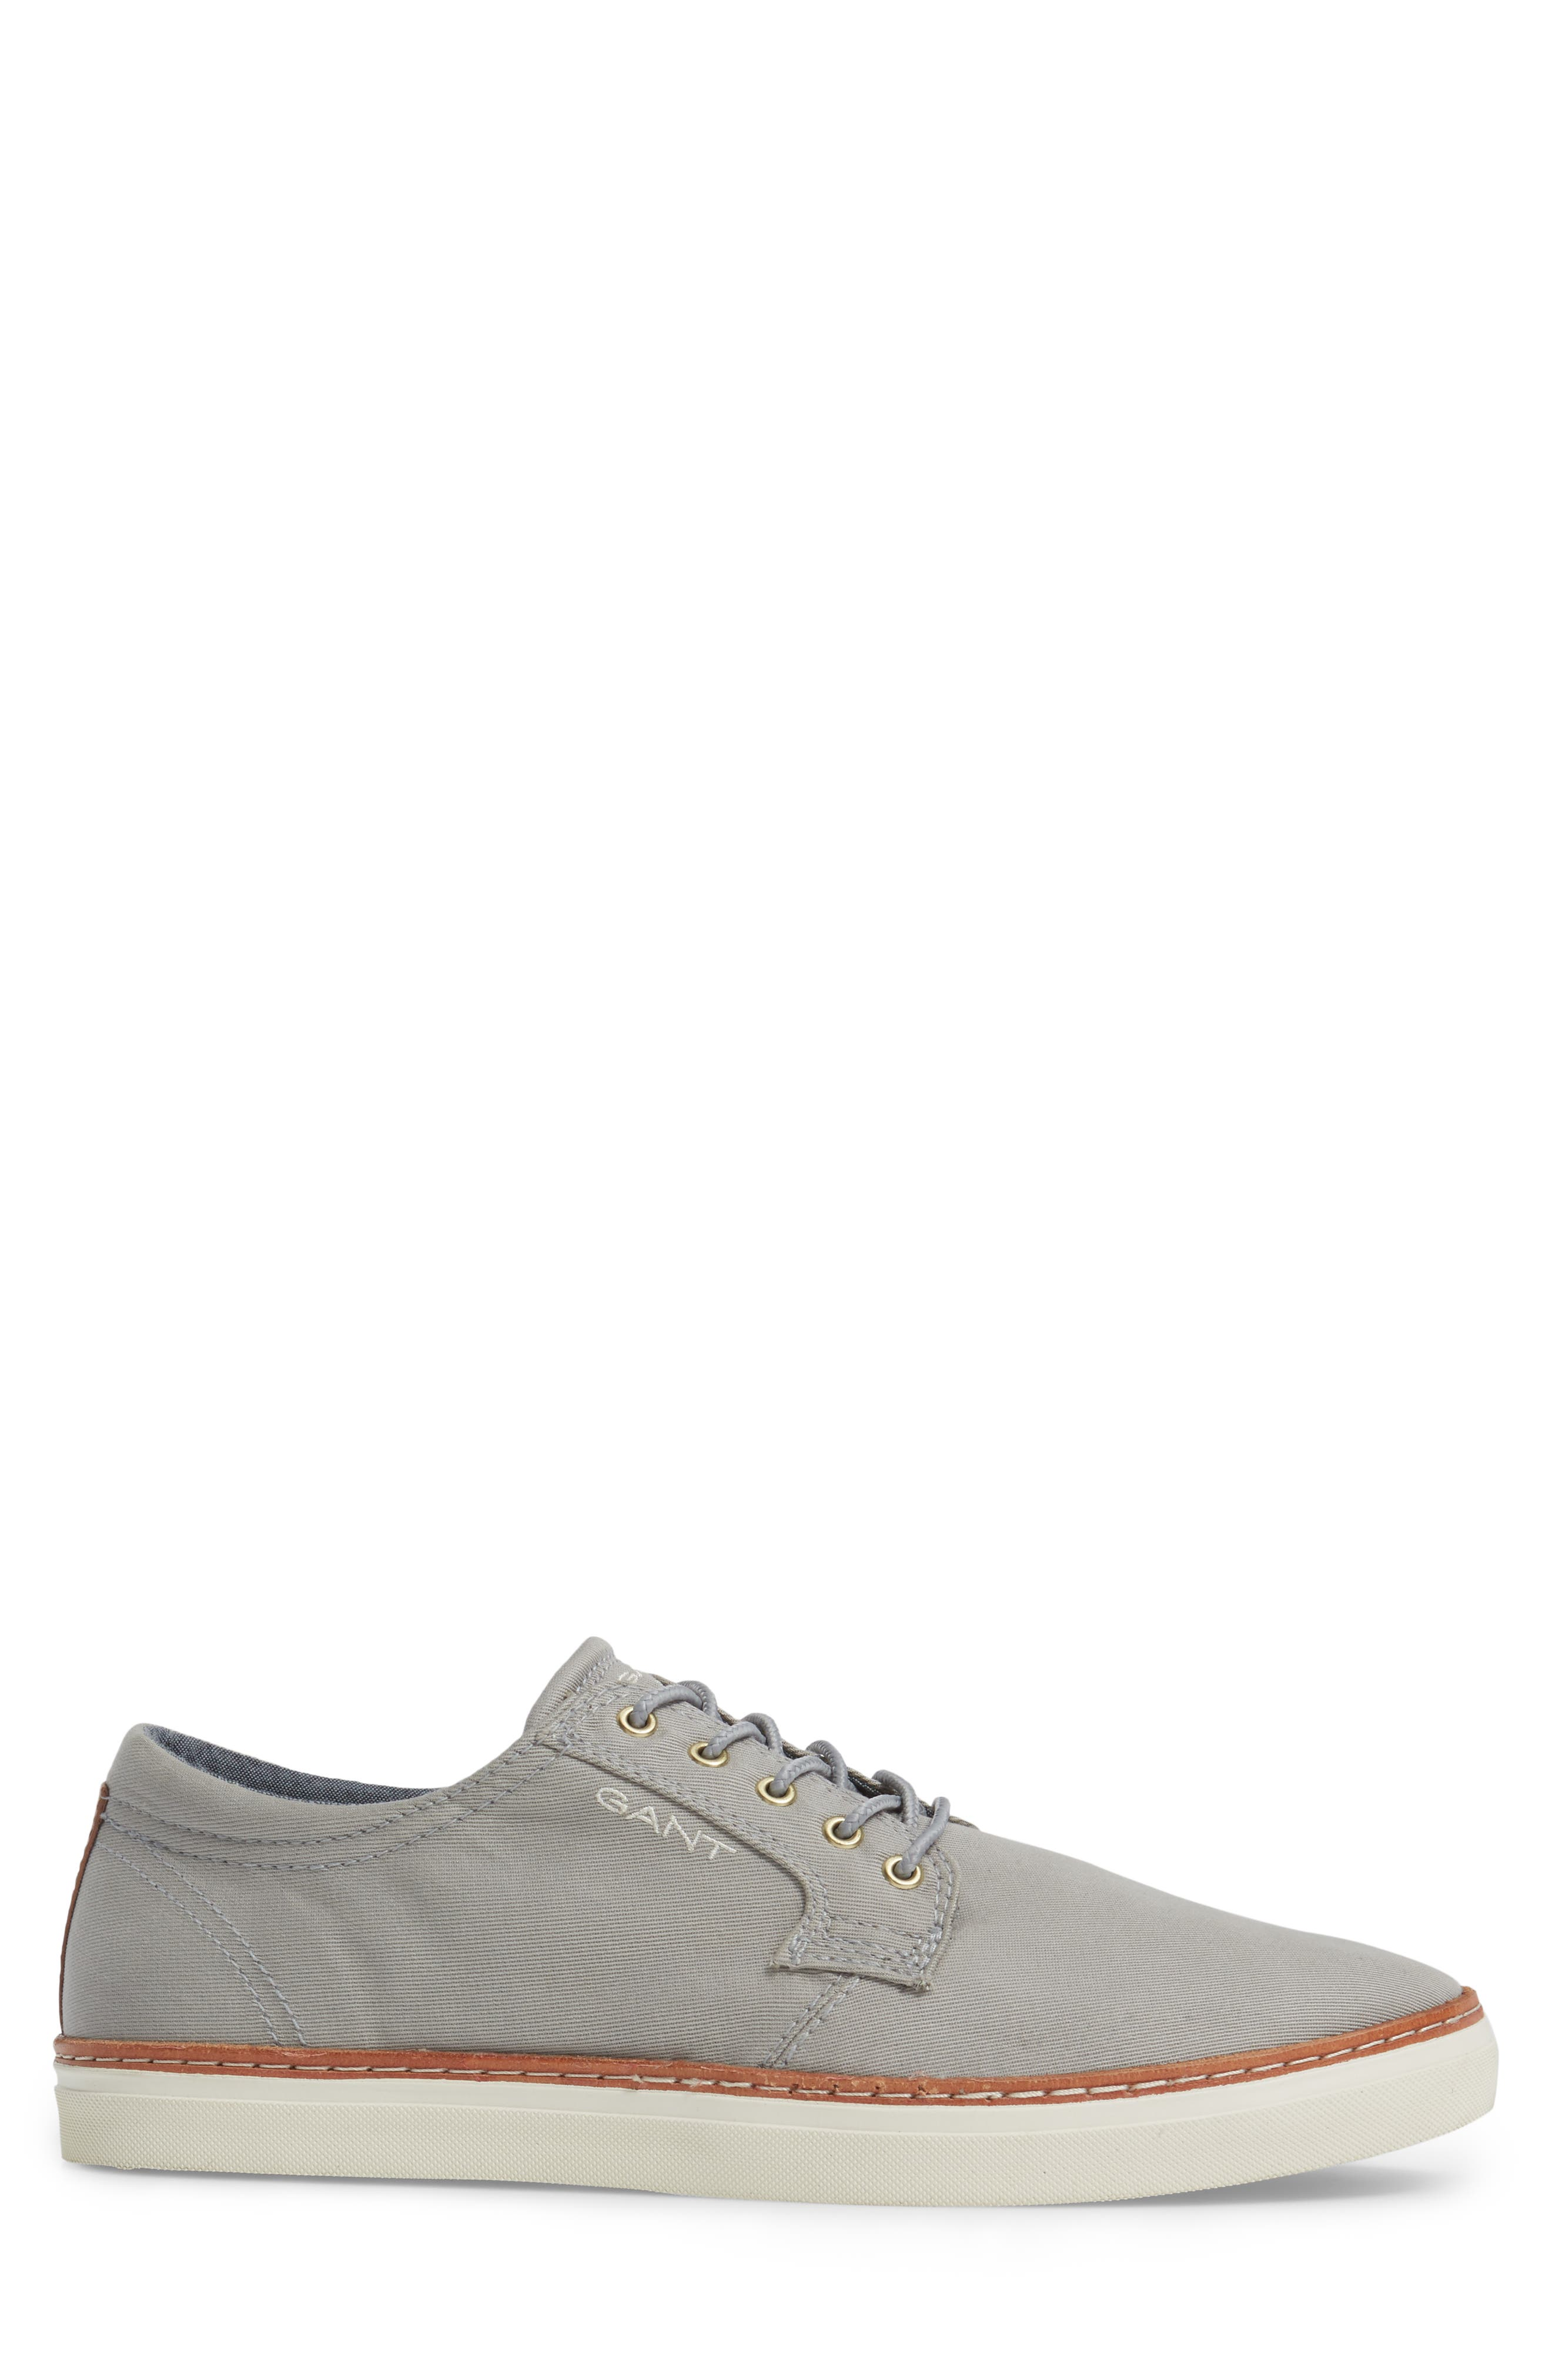 Alternate Image 3  - Gant Bari Sneaker (Men)